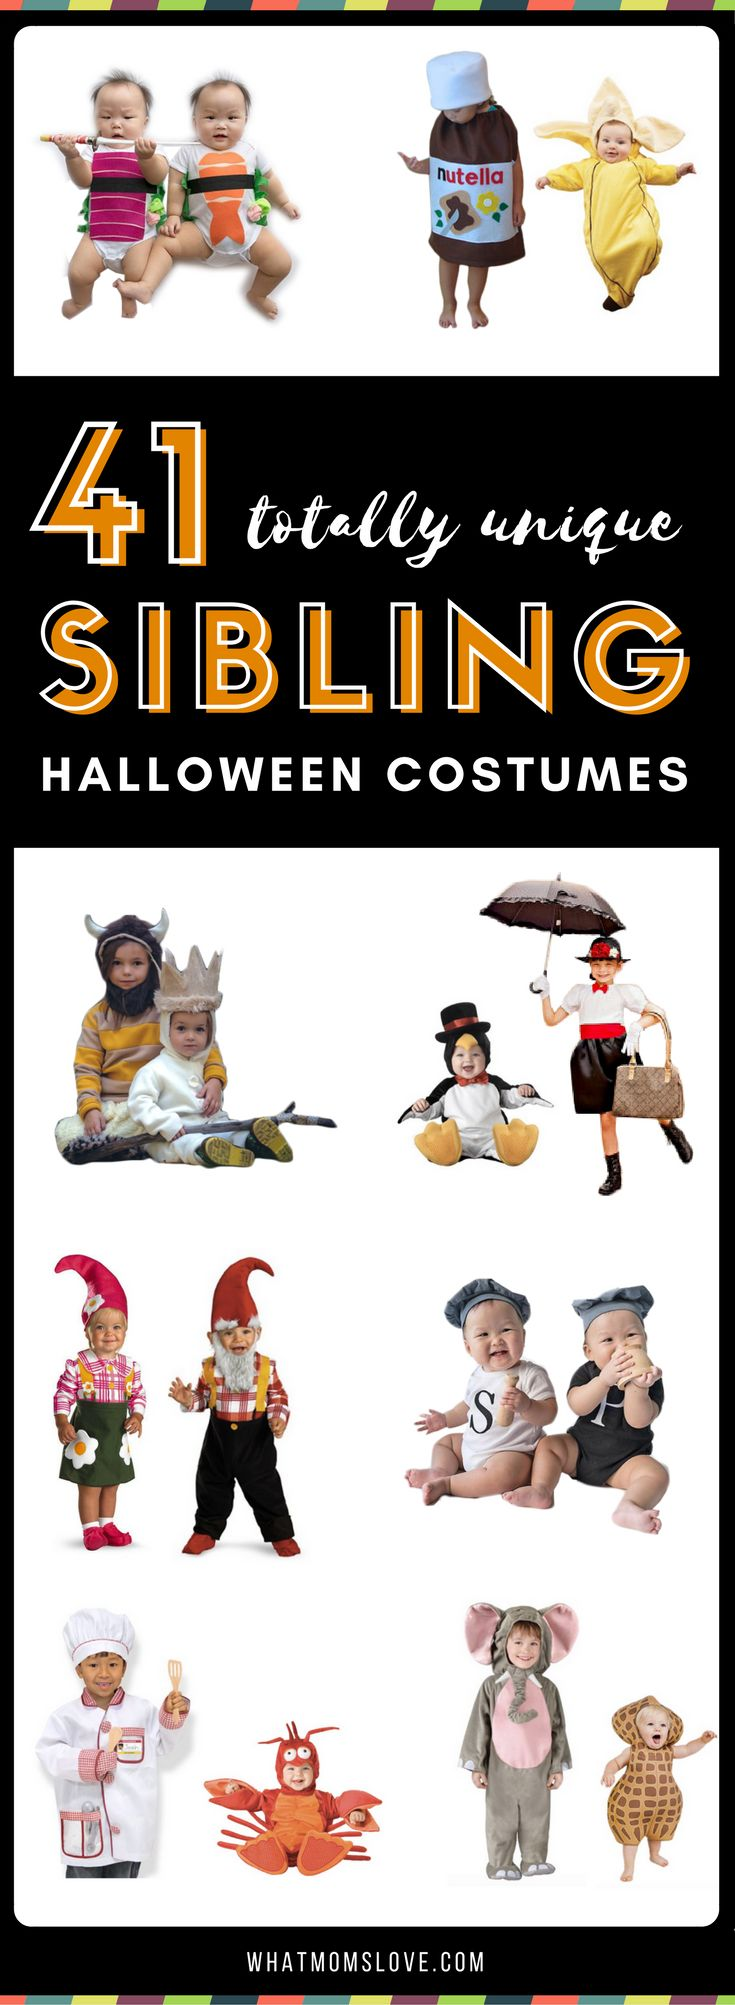 Sibling Costume Ideas for Halloween | Creative costumes for kids - perfect for families looking to coordinate their sisters, brothers, boys and girls | Unique group ideas for 2, 3 and more kids! No DIY required! #halloween #halloweencostume #sibling #costumeideas